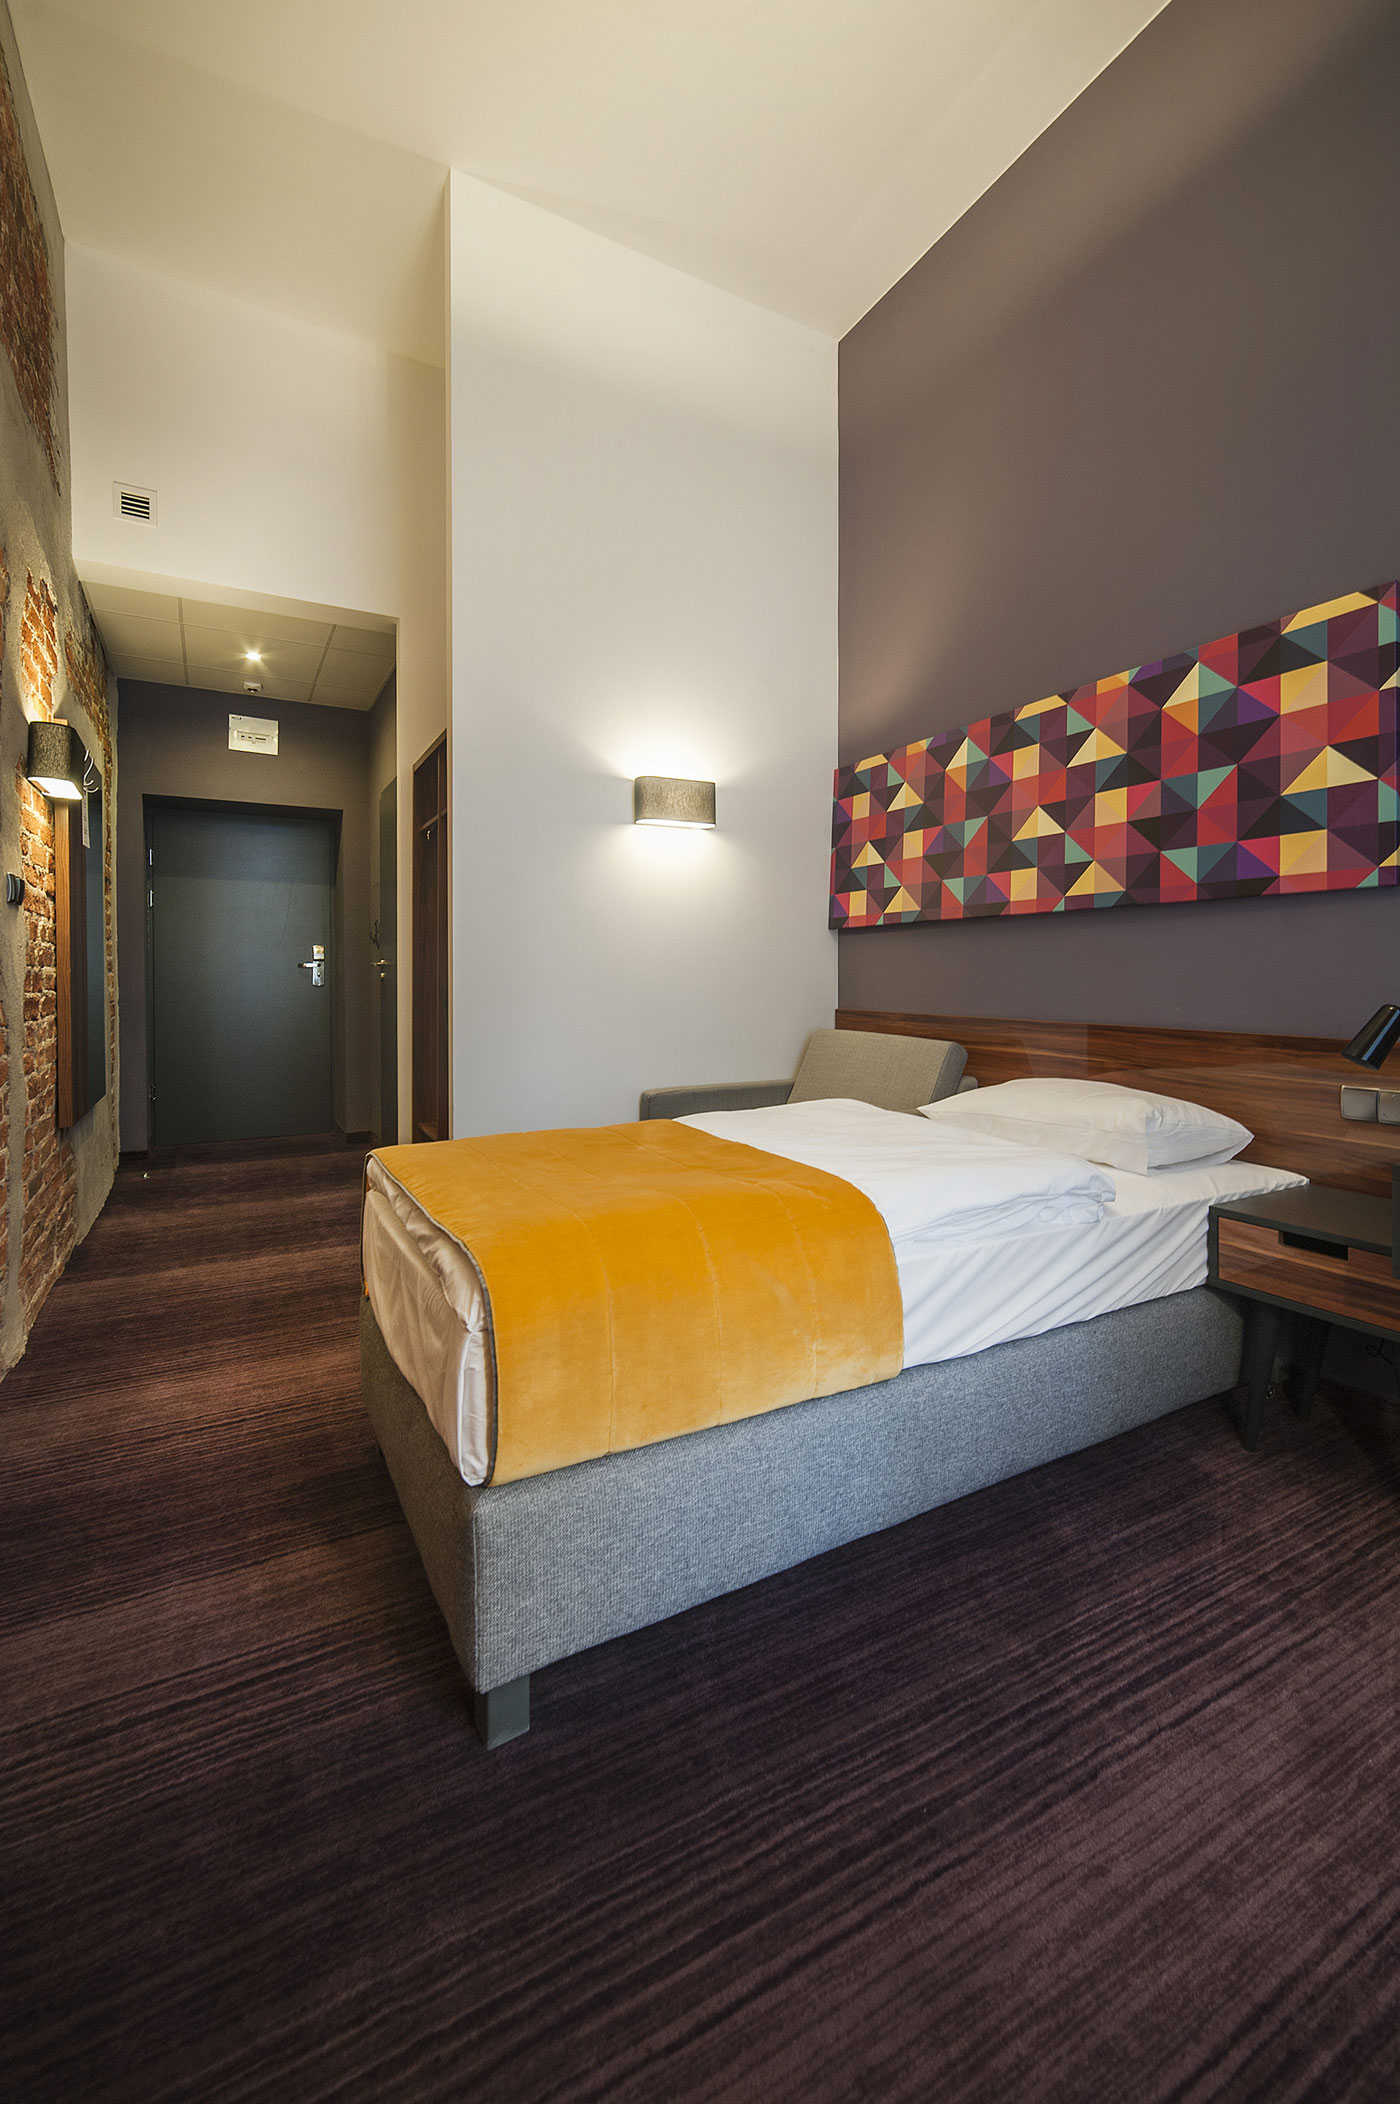 Modern Hotel Room: Tobaco Hotel By EC-5